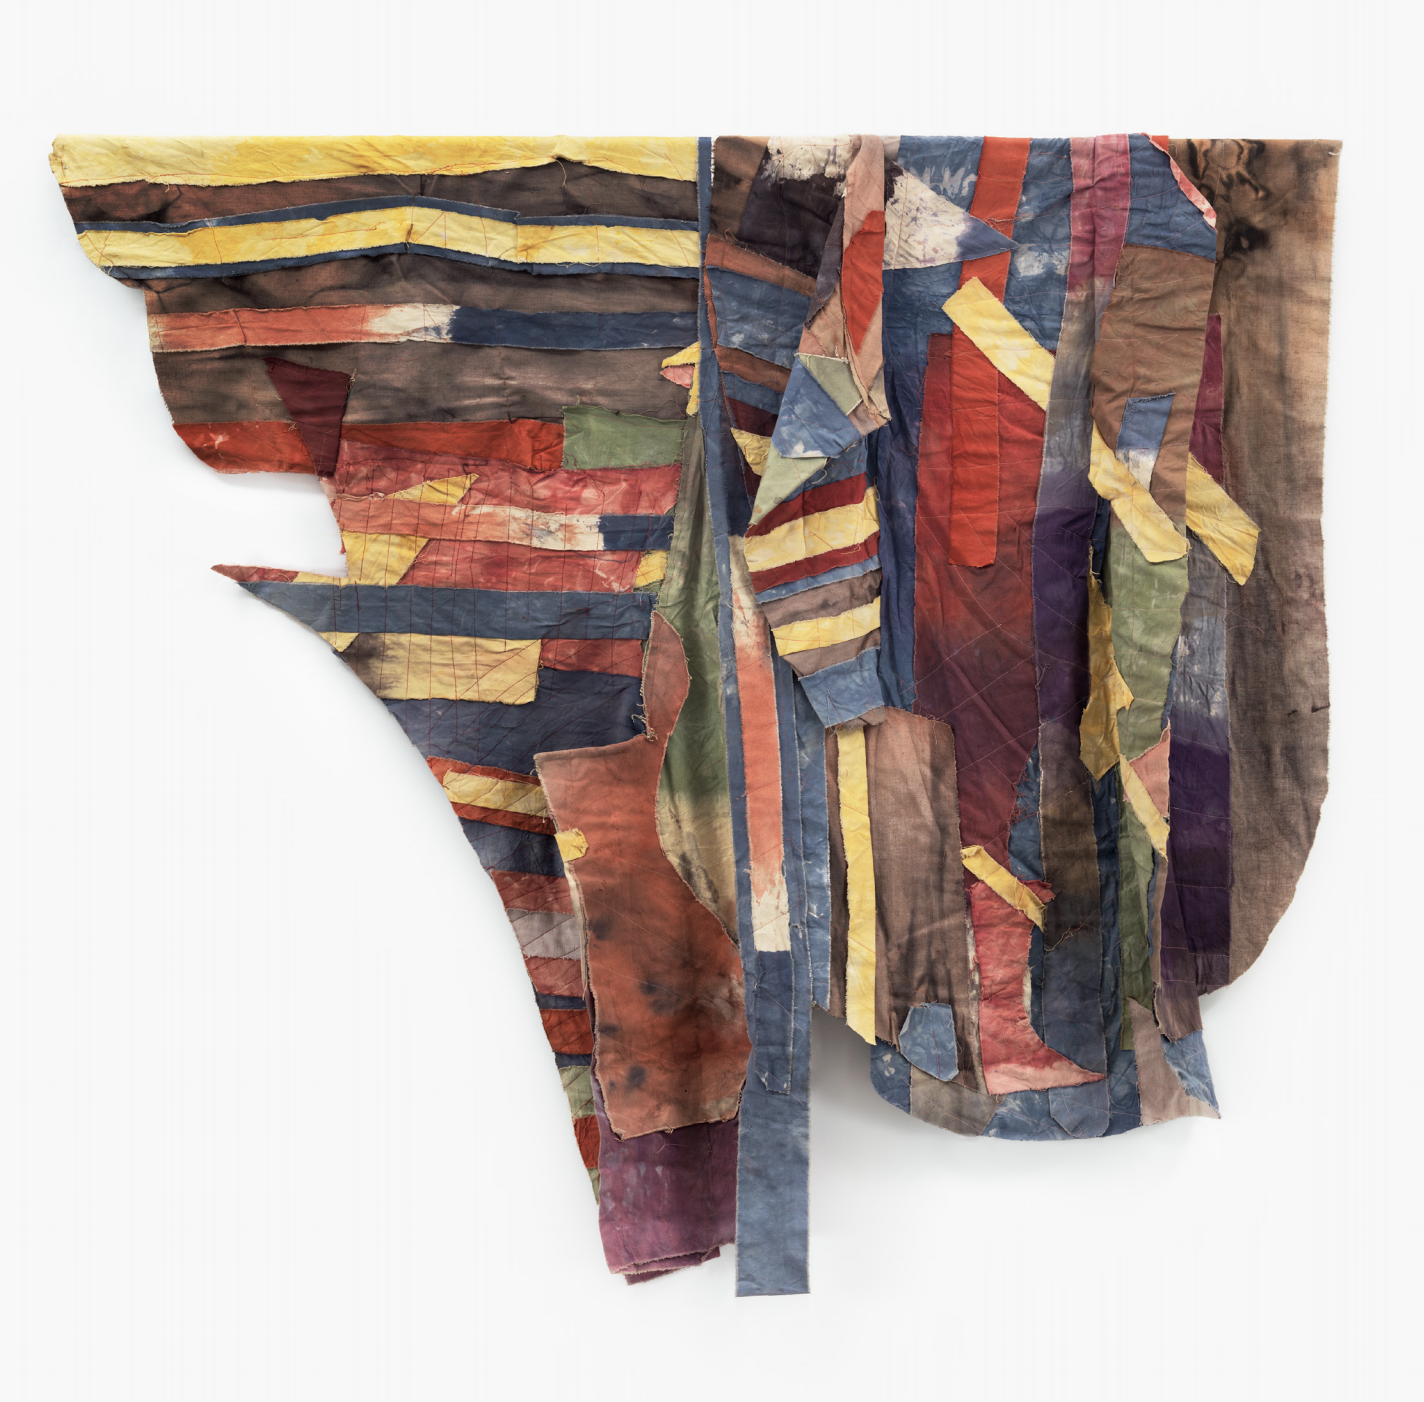 Al Loving, Untitled, 1975, mixed media on canvas, 66 × 74 in. (167.64 × 187.96 cm). Collection of Beth Rudin DeWoody